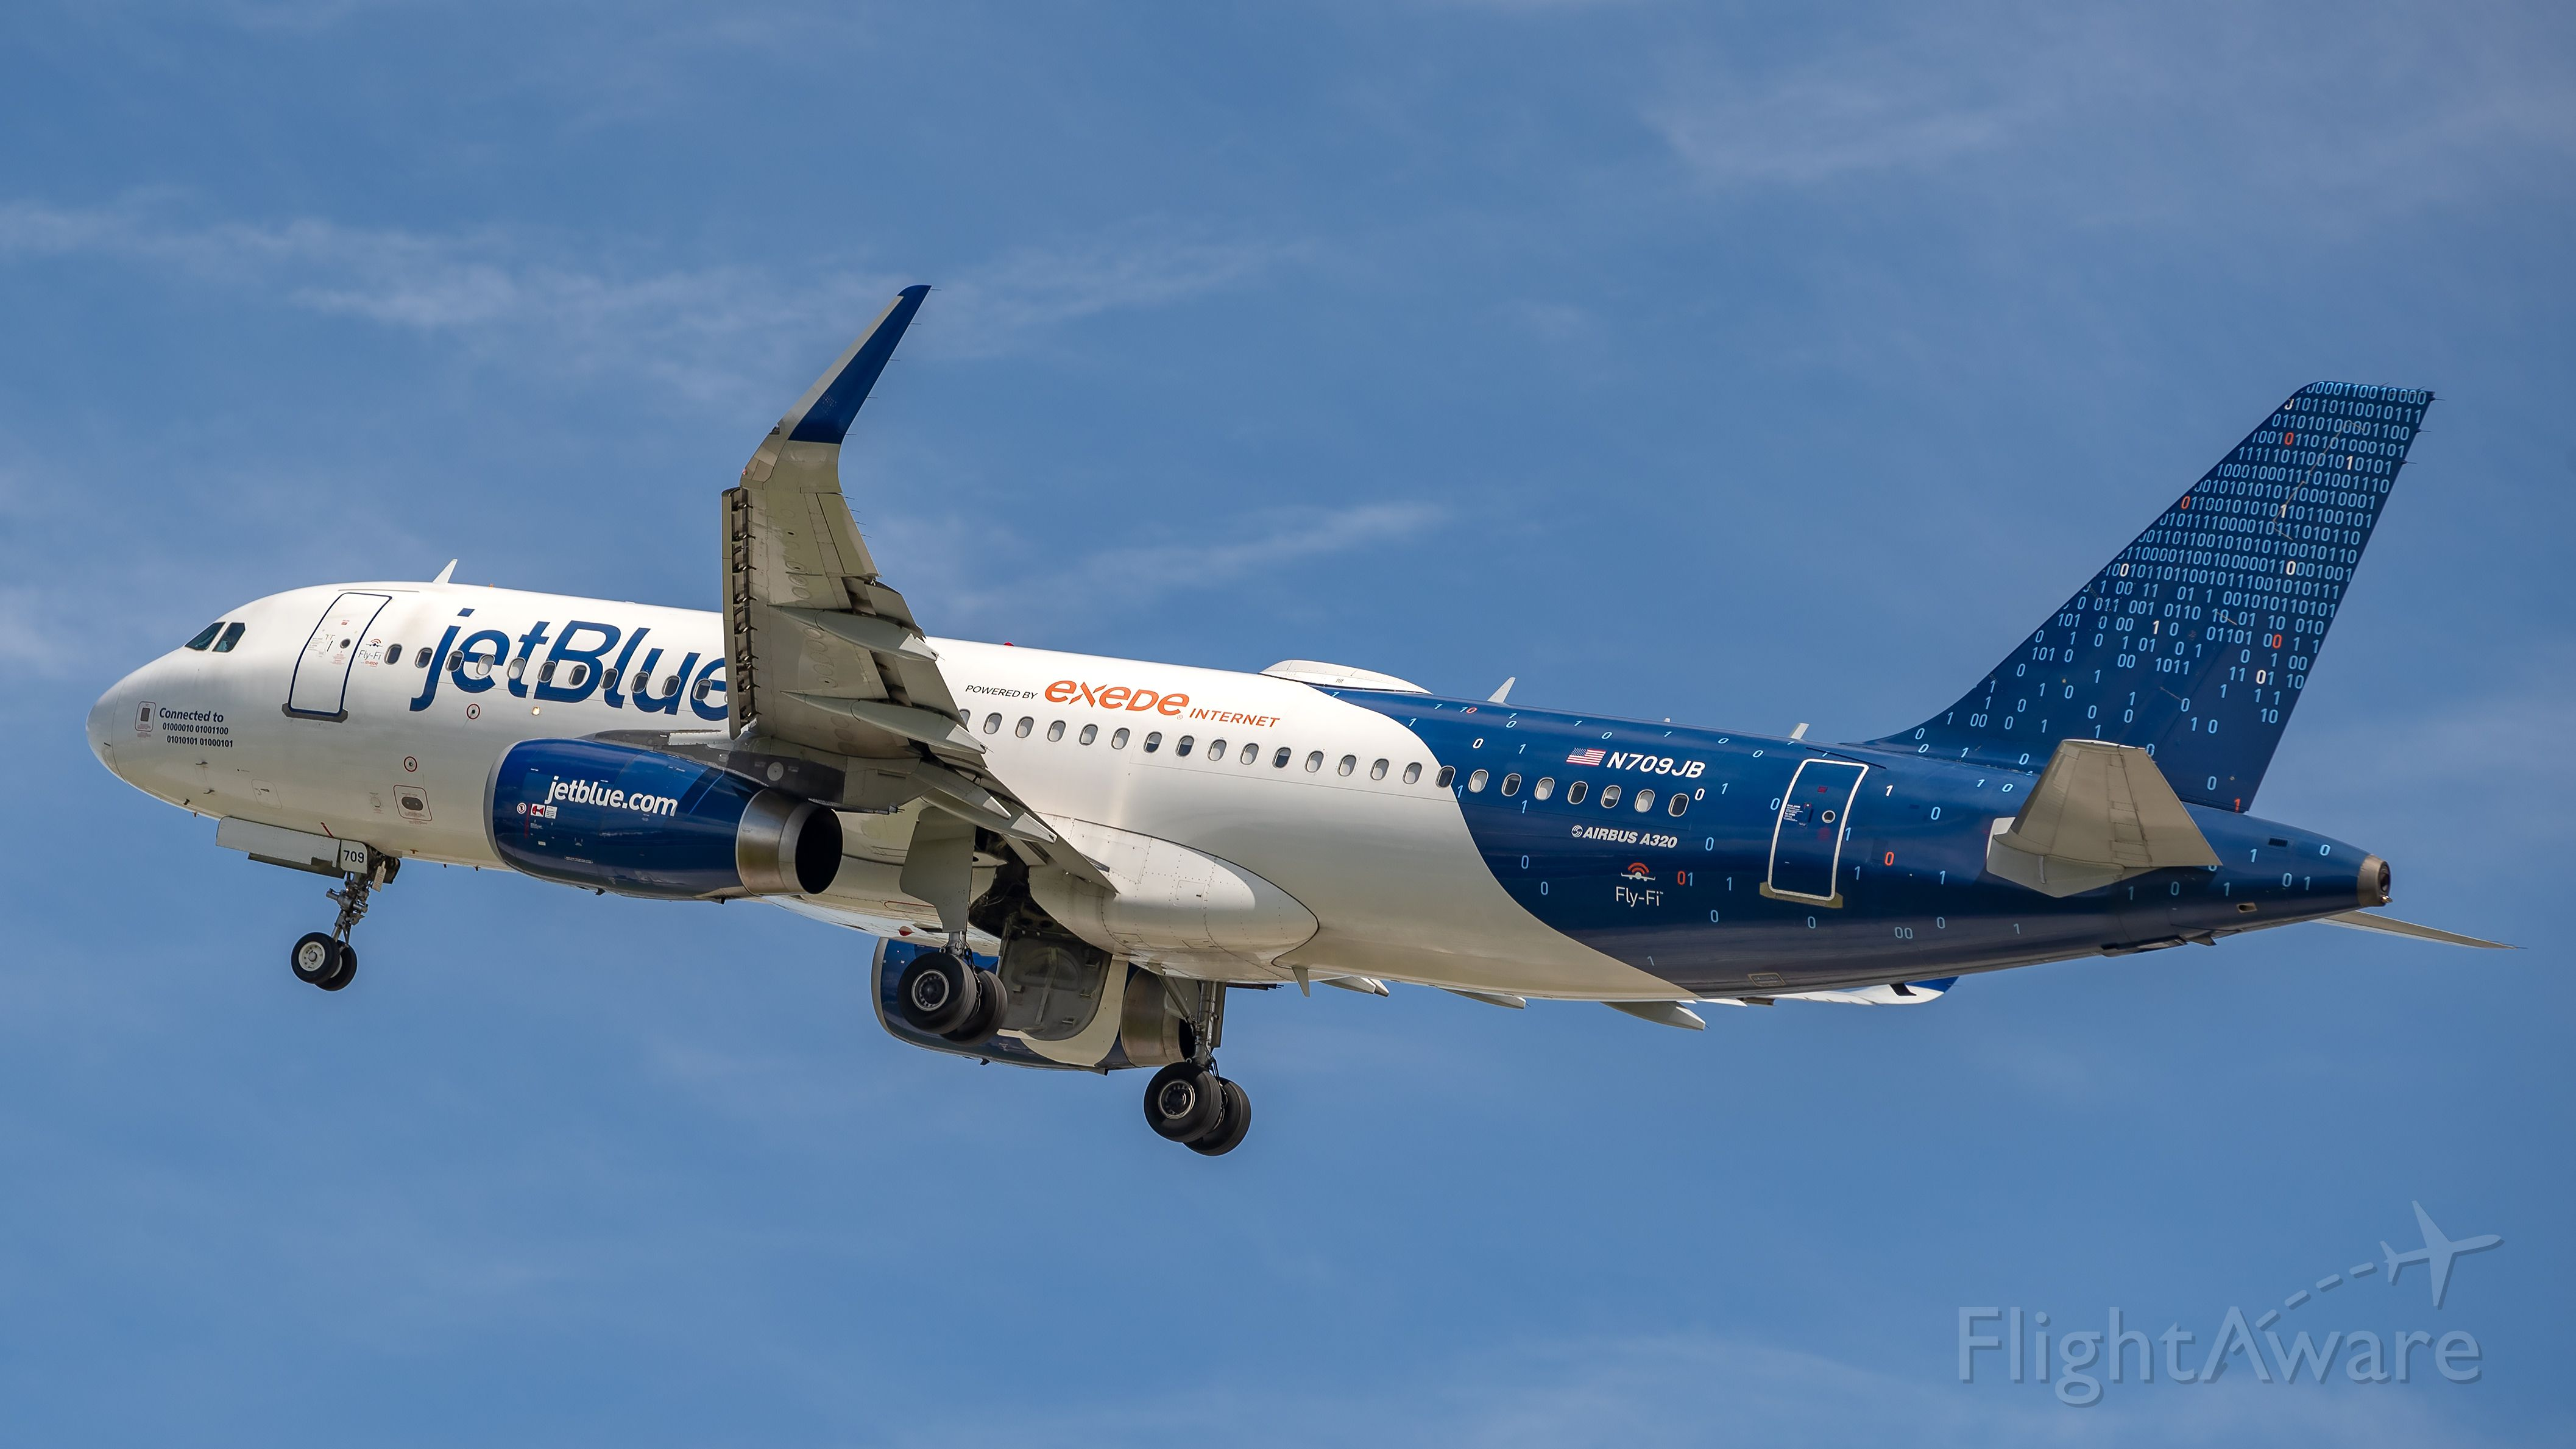 Airbus A320 (N709JB) - Jetblue A320 Binary livery taking off from runway 28L at KFLL